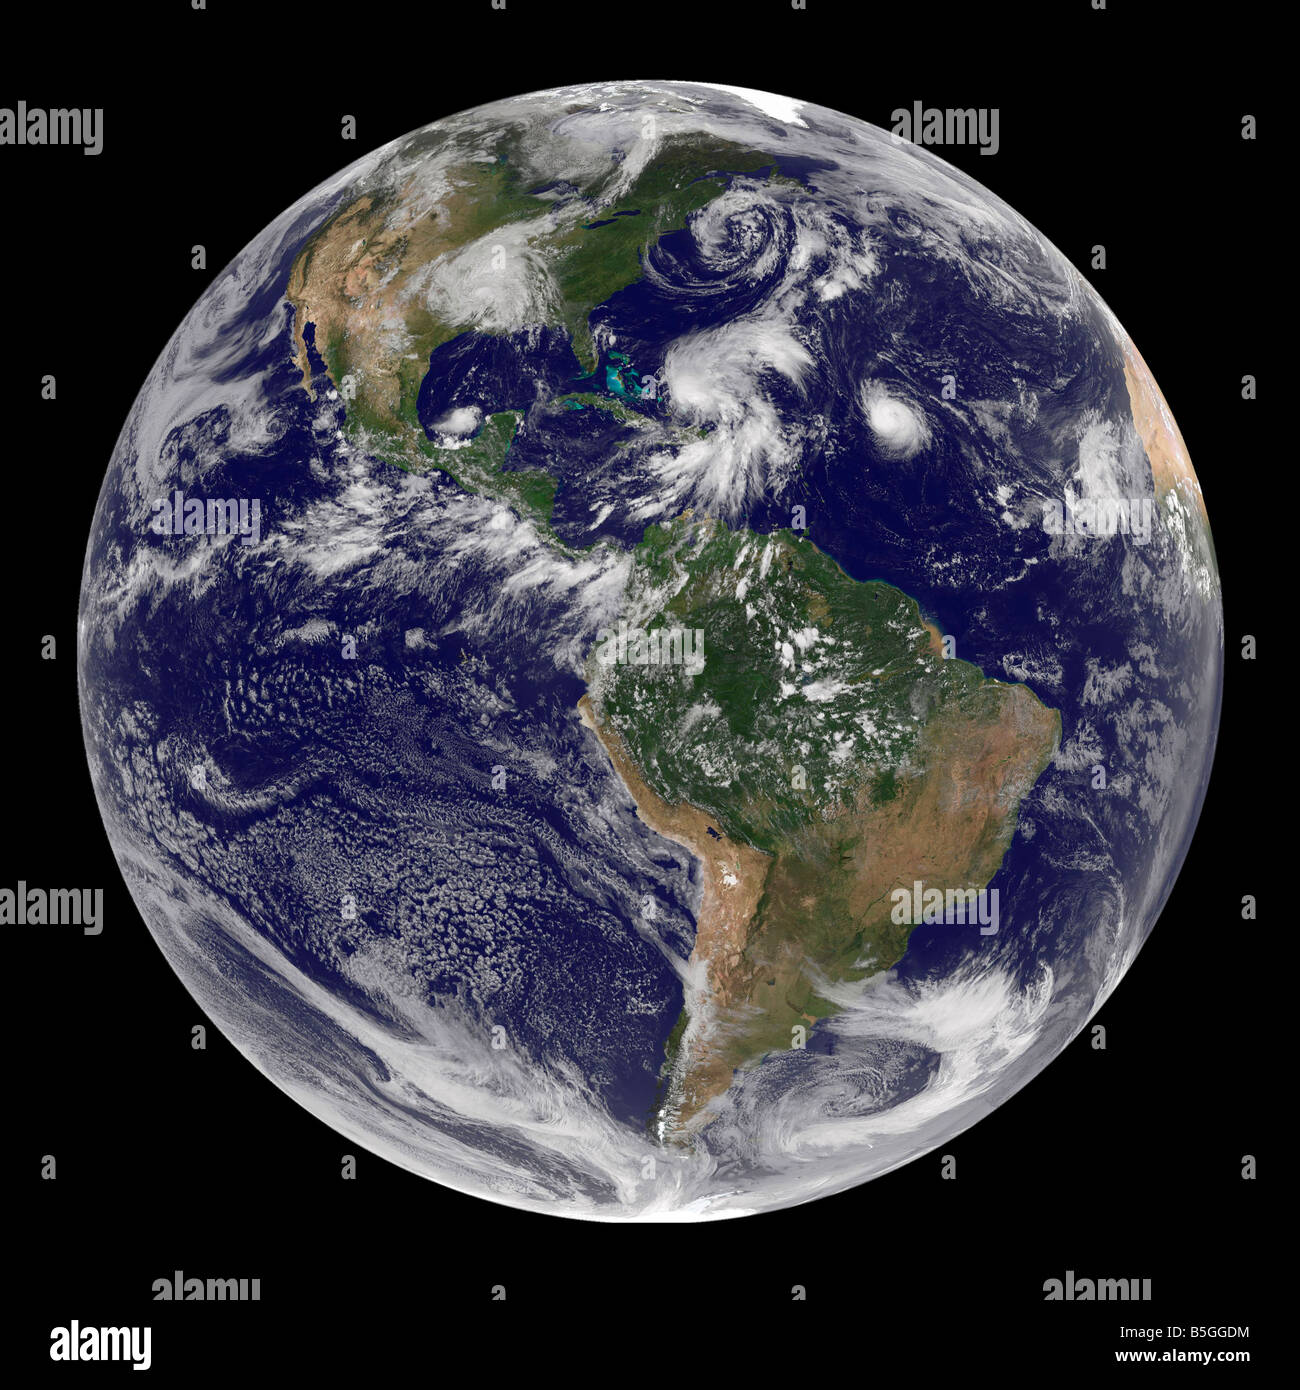 View of the full Earth and four storm systems. - Stock Image